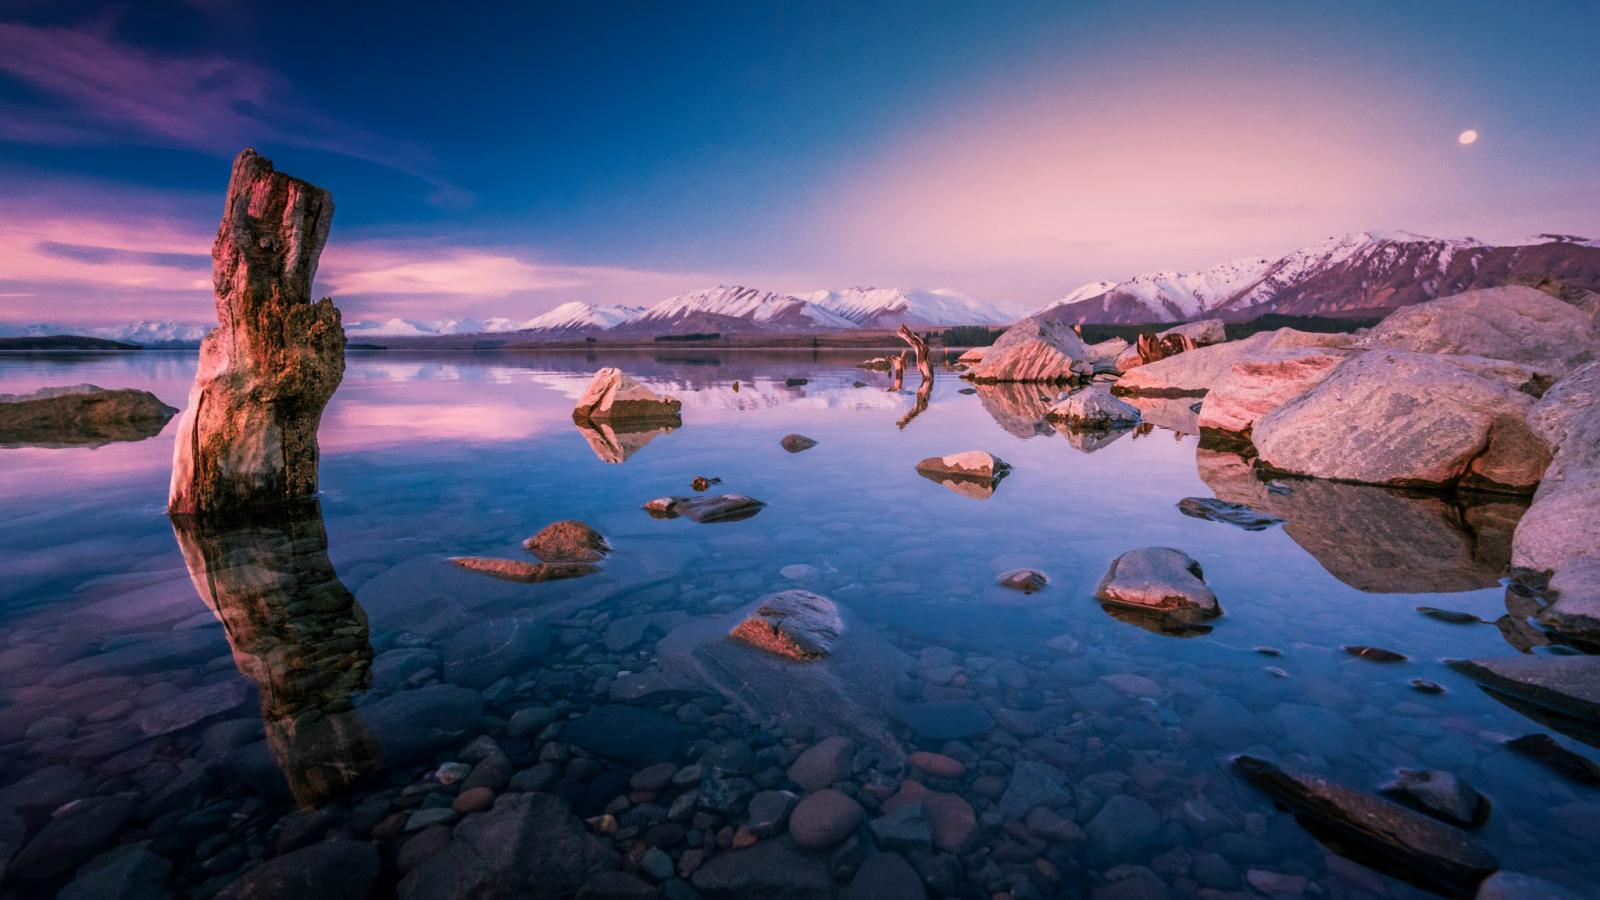 Evening Sunset Over Lake Tekapo New Zealand for Desktop ...